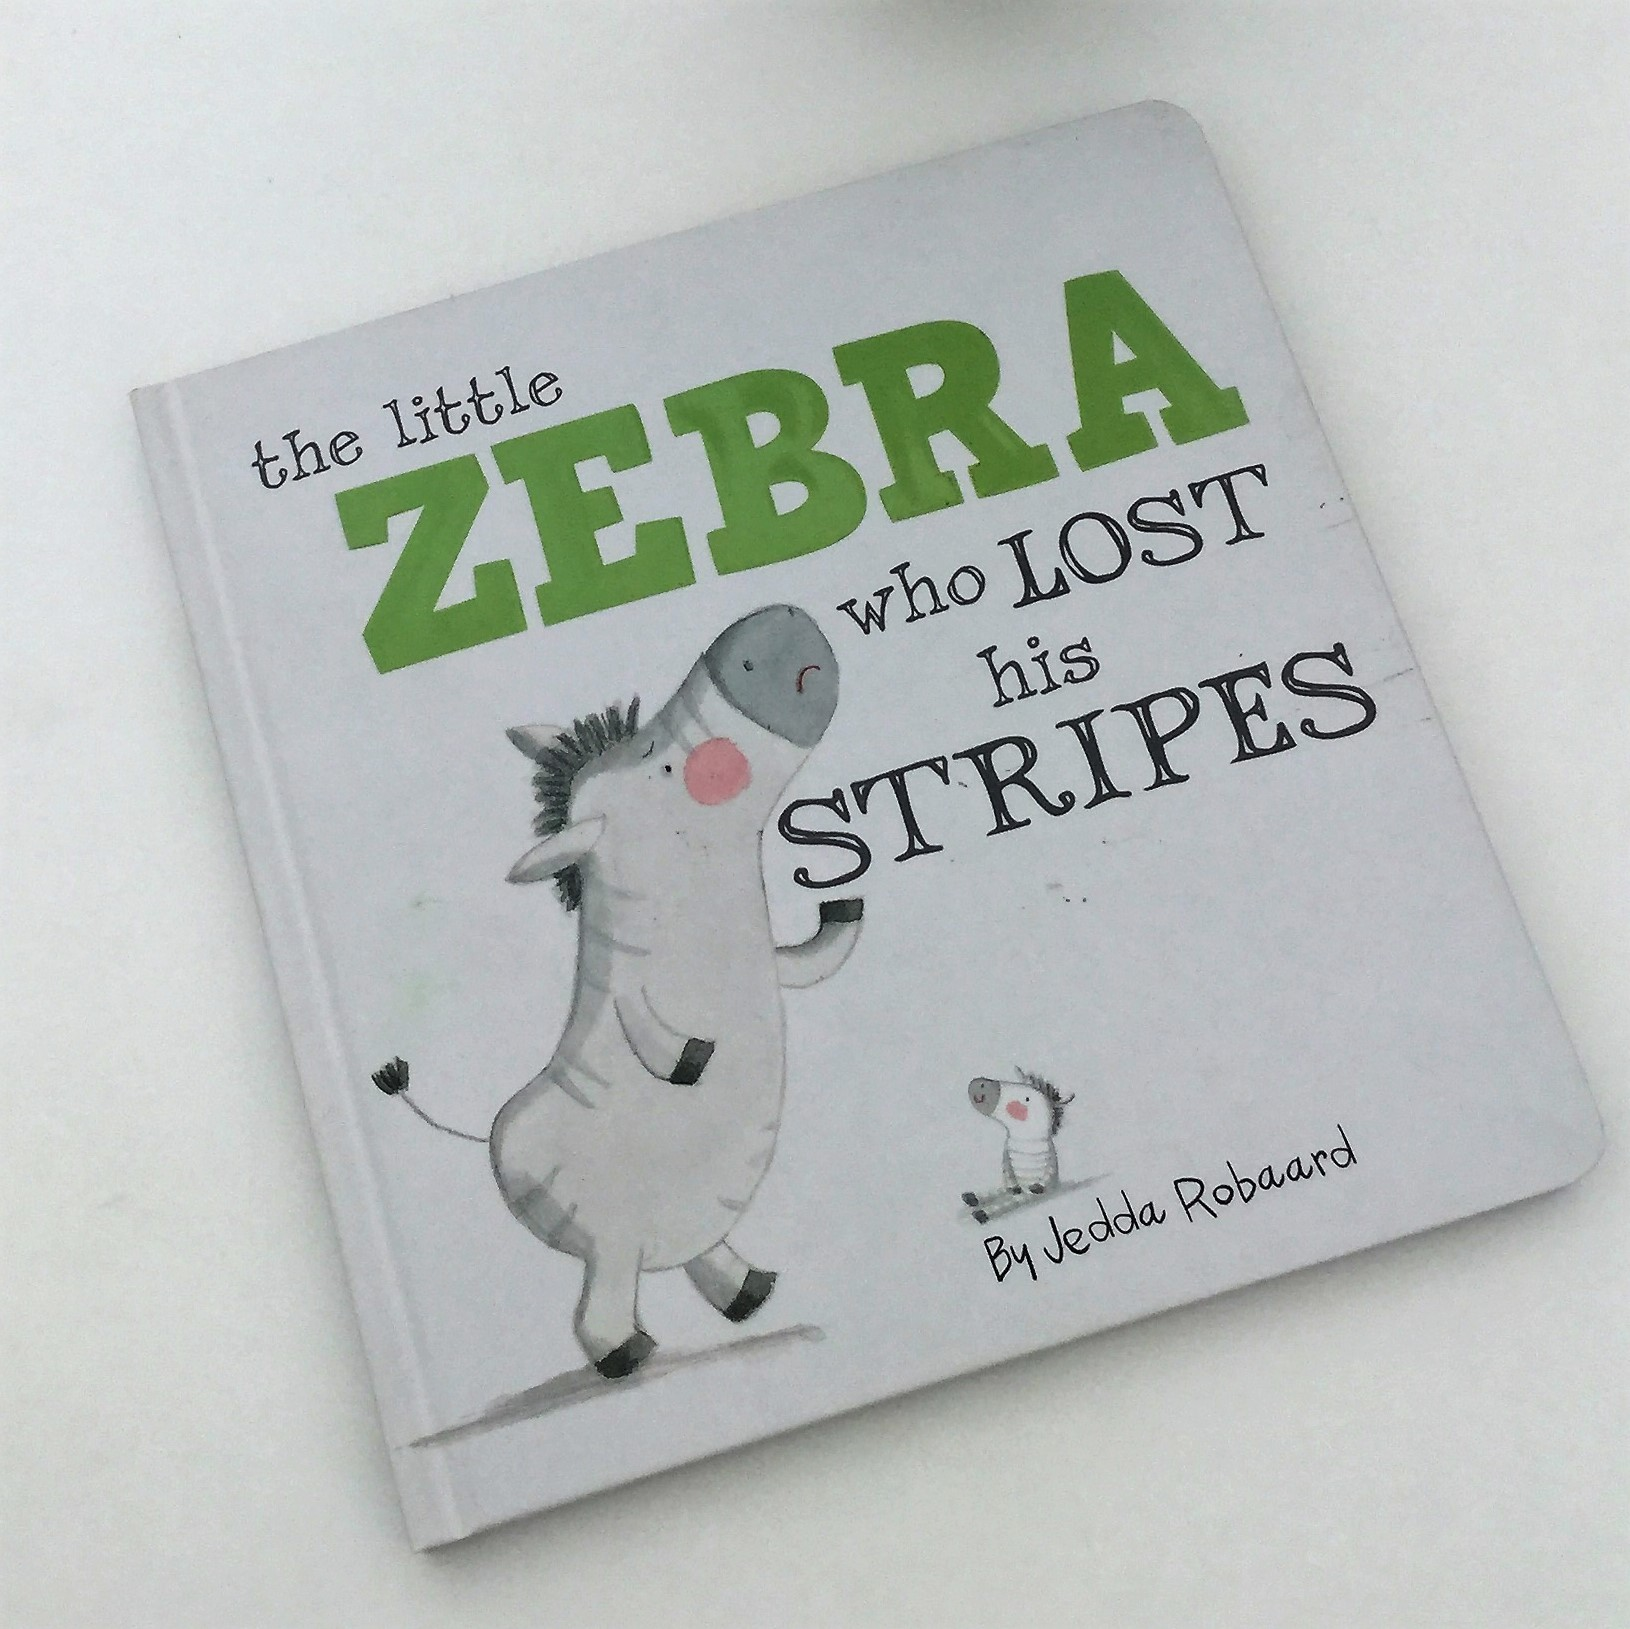 cocuklar-icin-kitap-onerileri-the-little-zebra-who-lost-his-stripes-by-jedda-robaard-1-yas-ve-uzeri